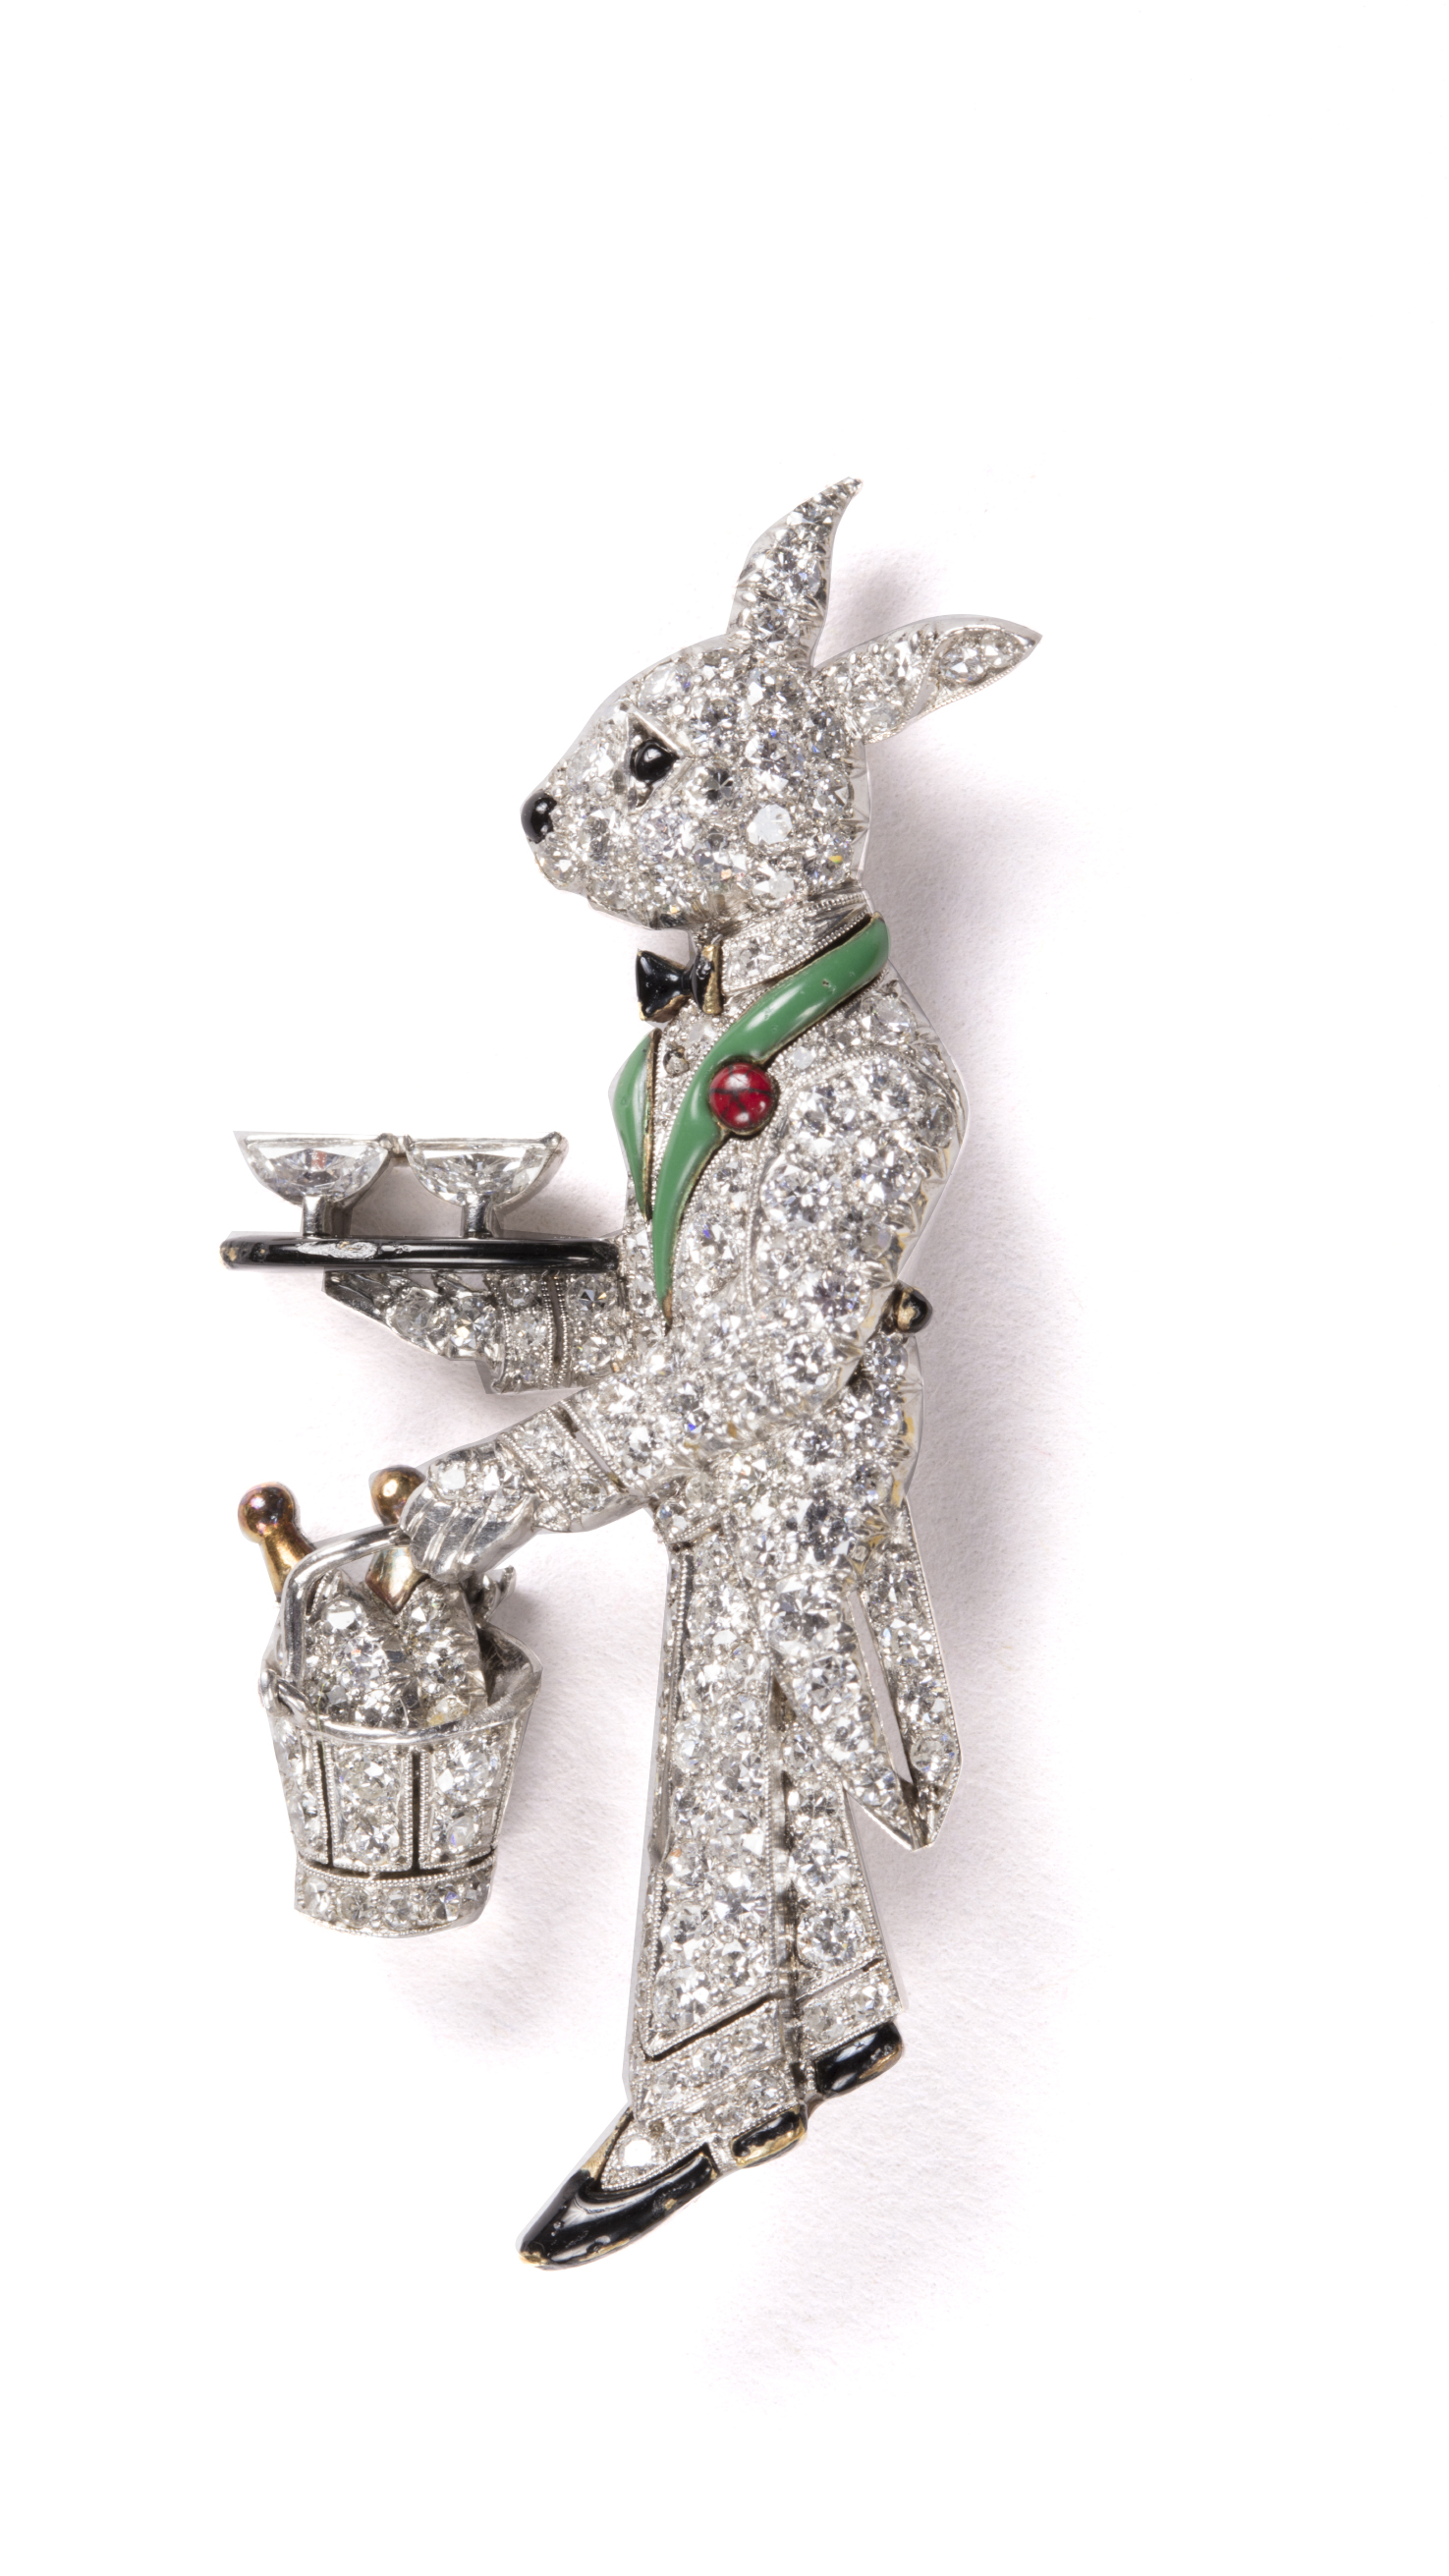 Rabbit brooch with diamonds